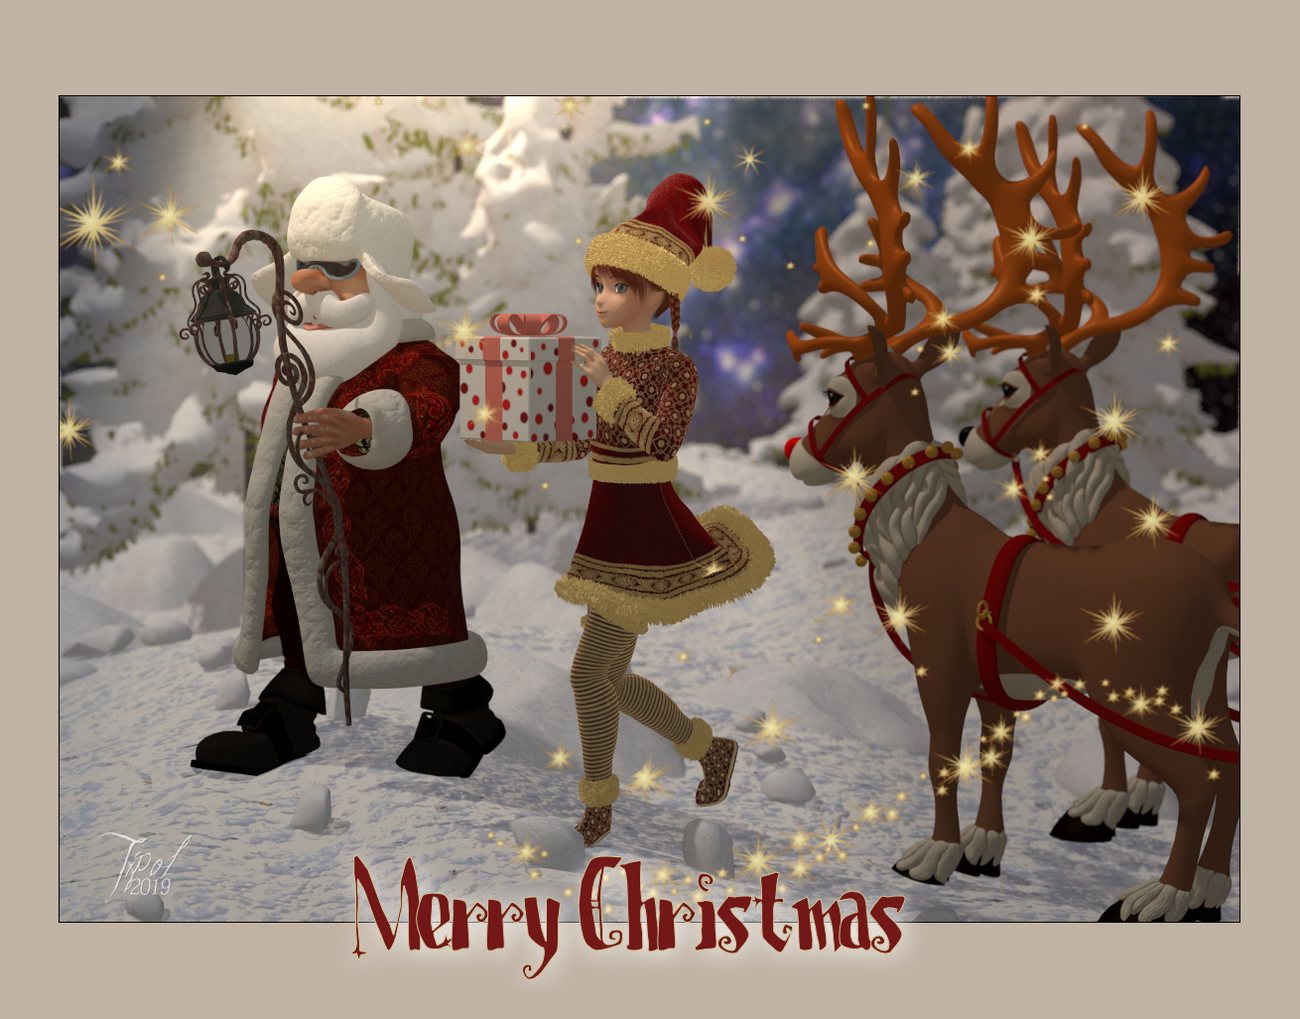 Merry Christmas by Tipol